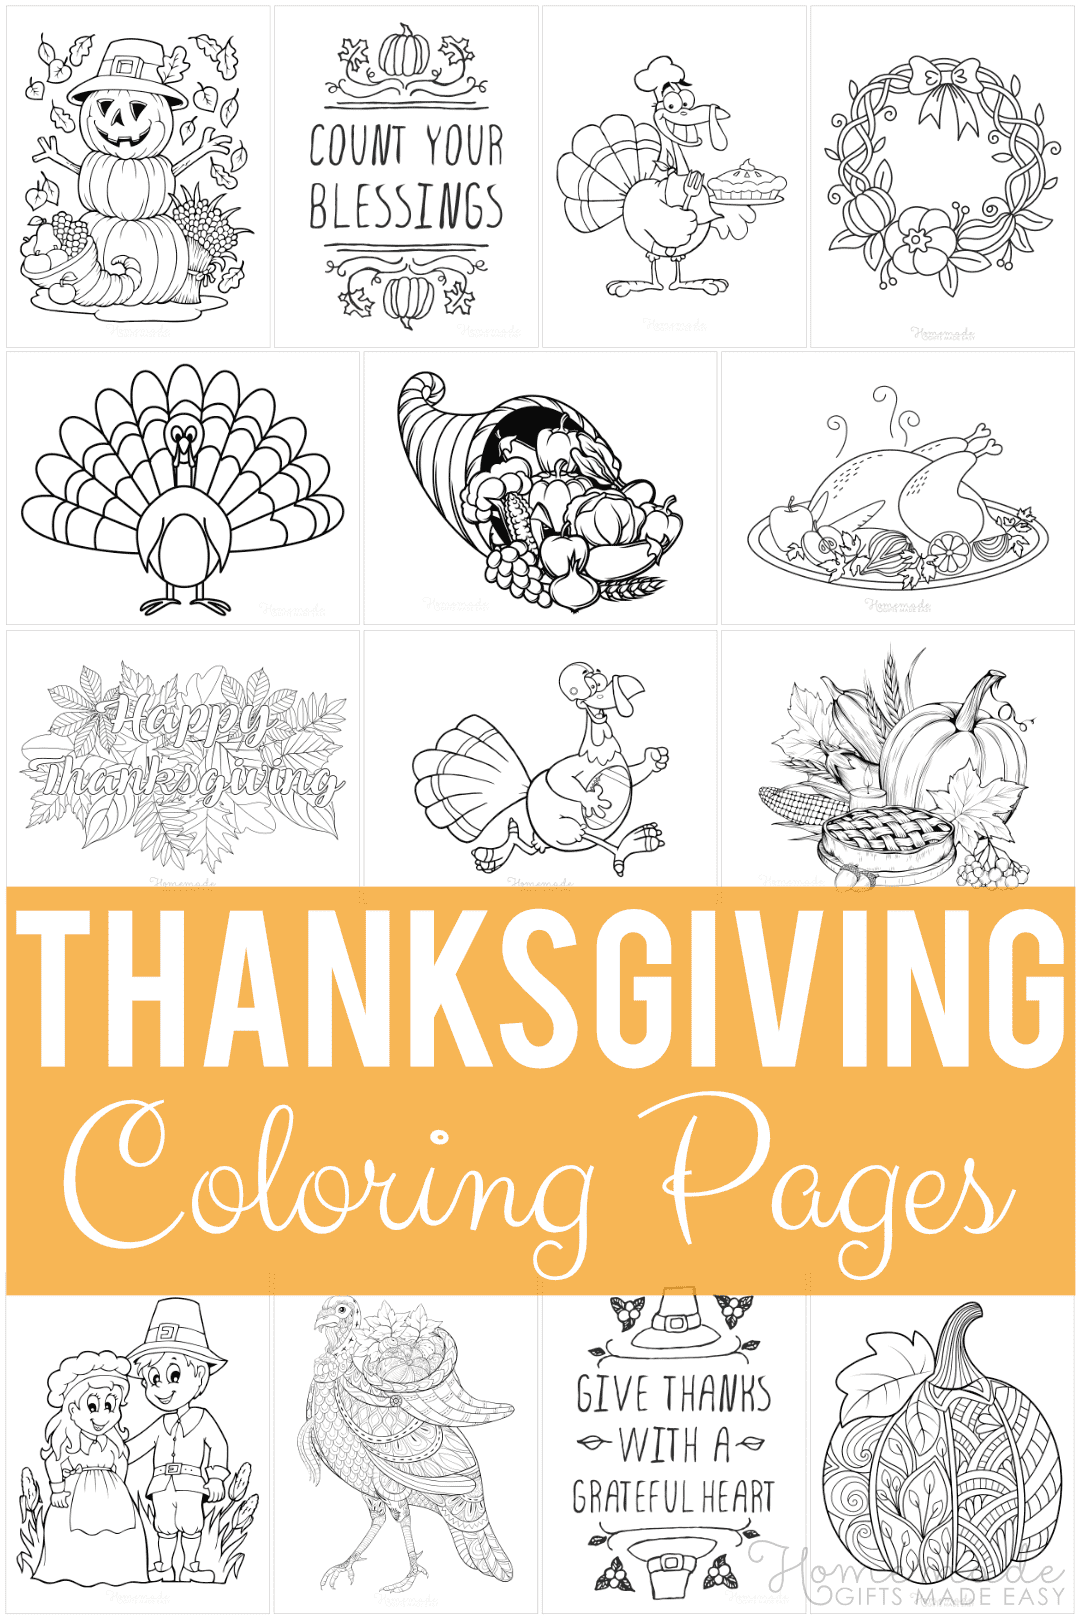 81 Best Autumn Fall Coloring Pages Free Pdf Printables For Kids Thanksgiving Coloring Pages Thanksgiving Coloring Book Coloring Pages For Kids [ 1620 x 1080 Pixel ]